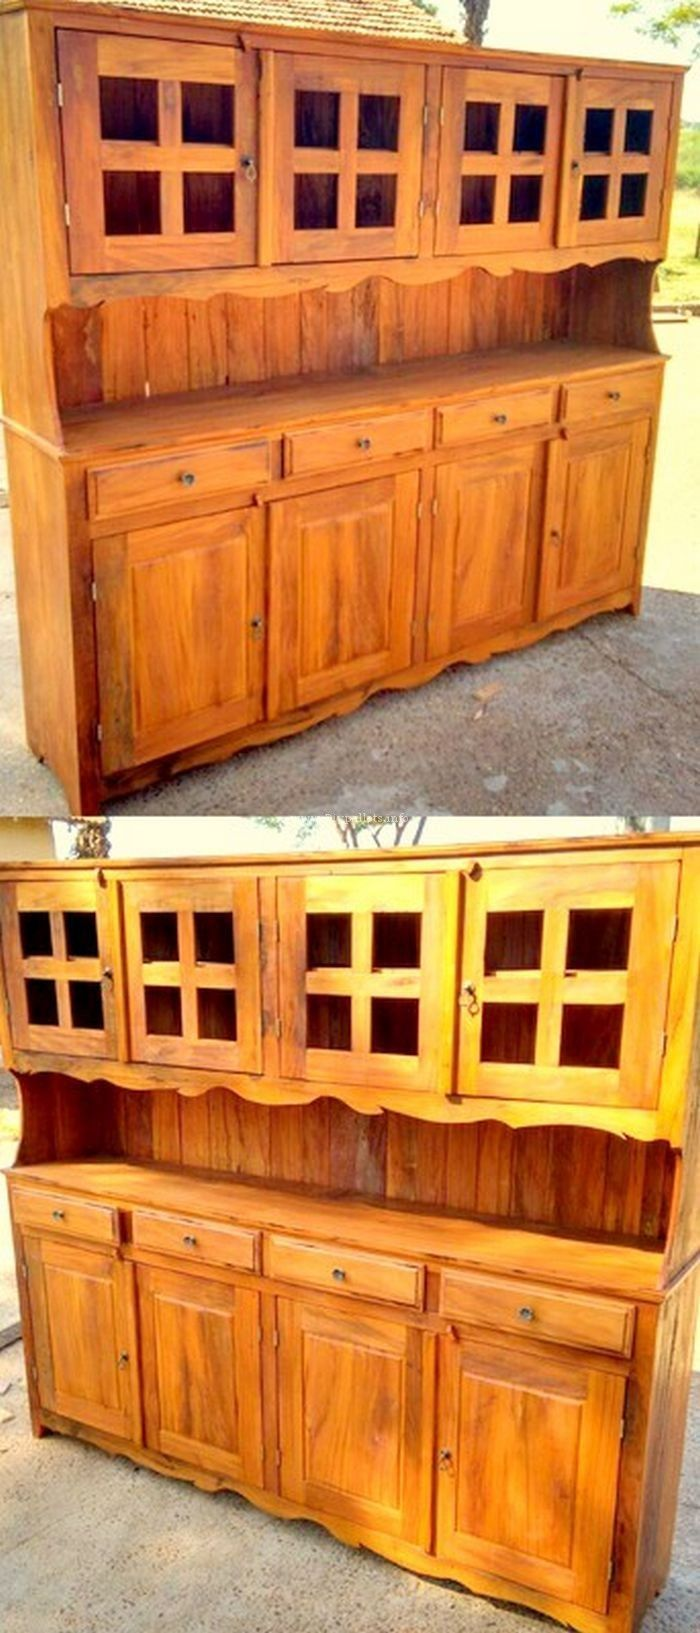 Pallets Outdoor Furniture Pallet Kitchen Caben Ideas When It Comes To Renovate Or Furn In 2020 Pallet Furniture Outdoor Wooden Pallet Furniture Wood Pallet Furniture